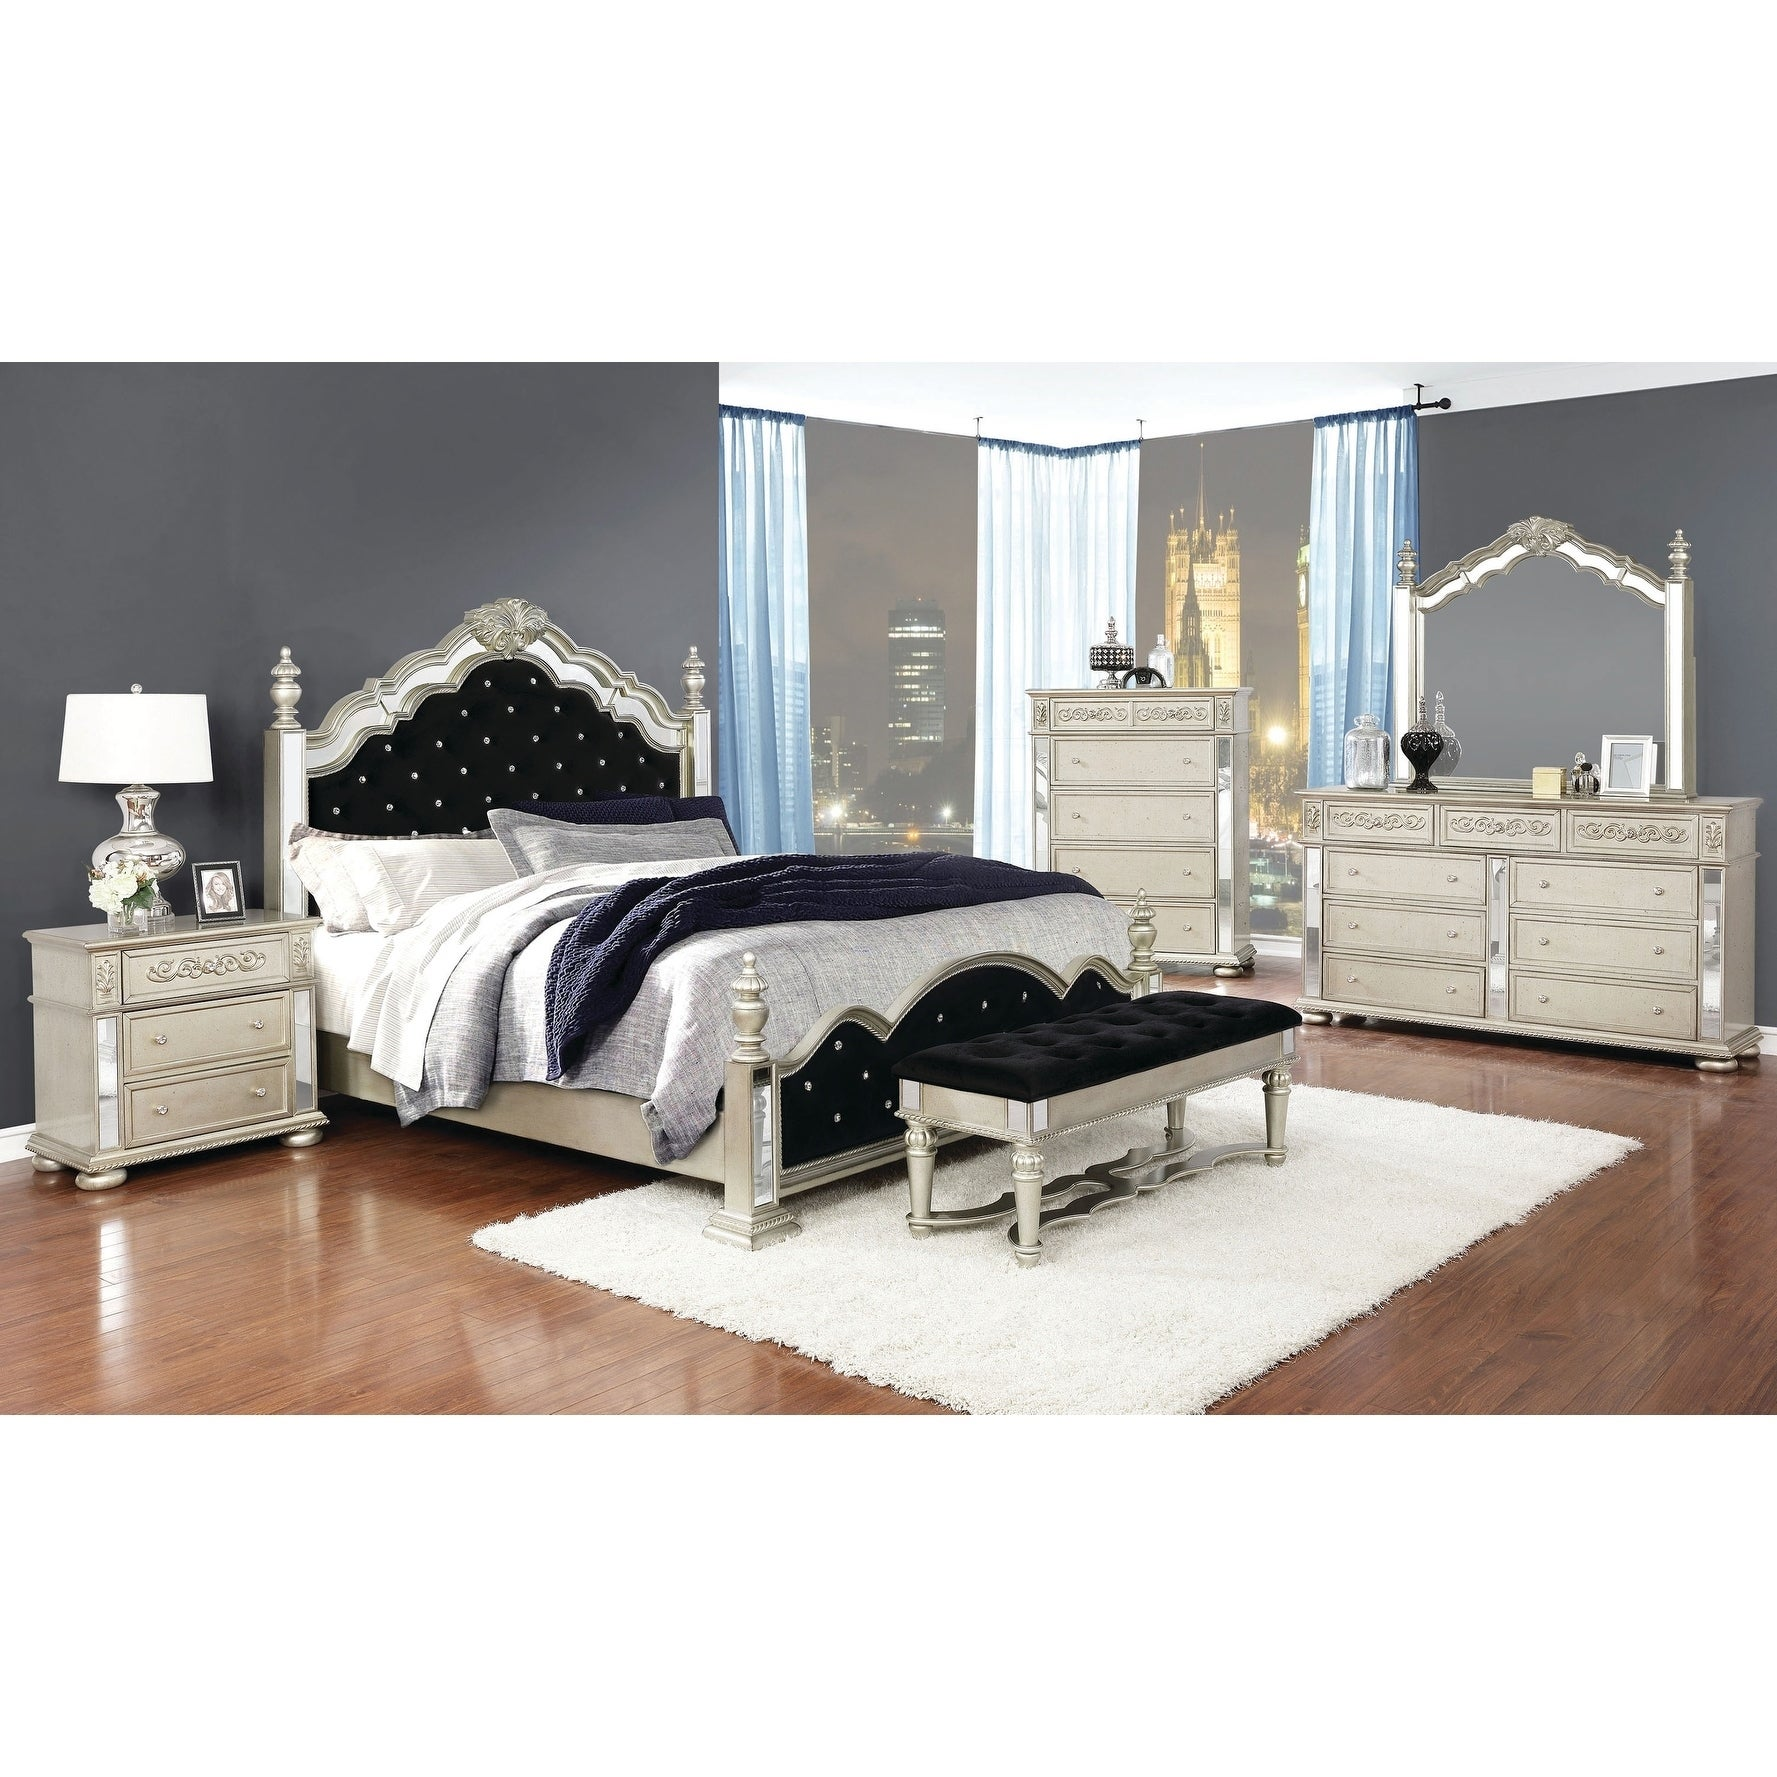 Silver Orchid Bunny Metallic Platinum And Black 4 Piece Bedroom Set Overstock 29141561